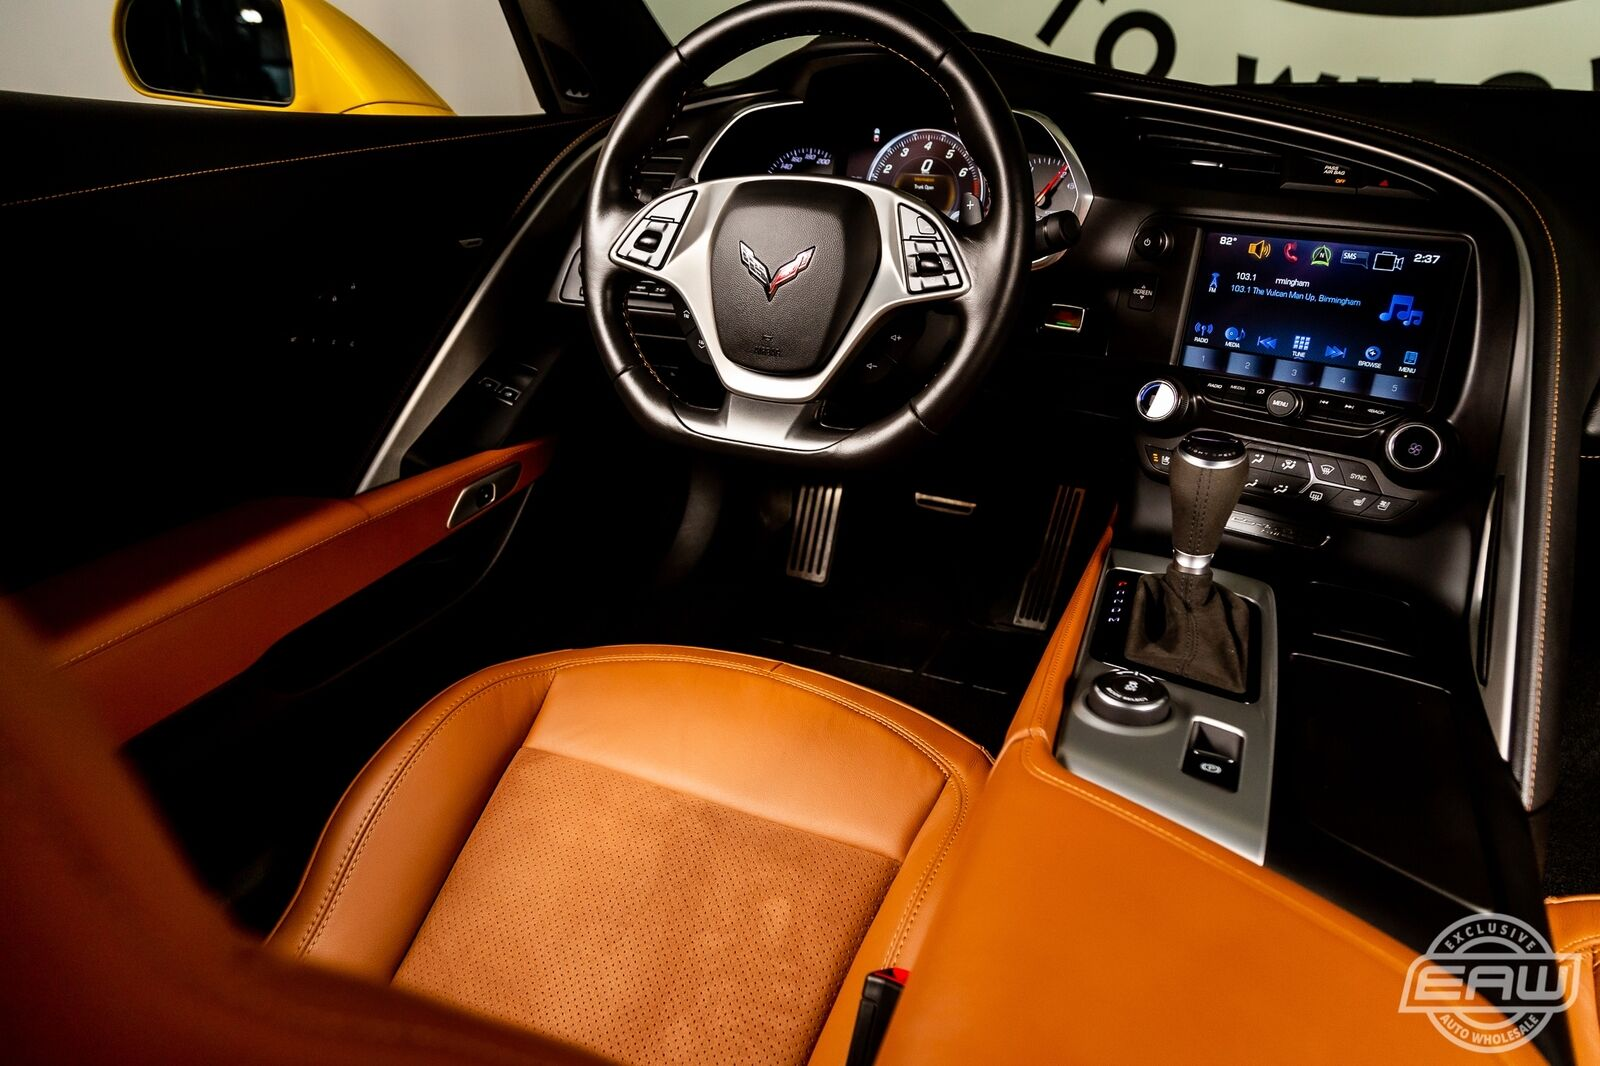 2016 Yellow Chevrolet Corvette Stingray 2LT | C7 Corvette Photo 7